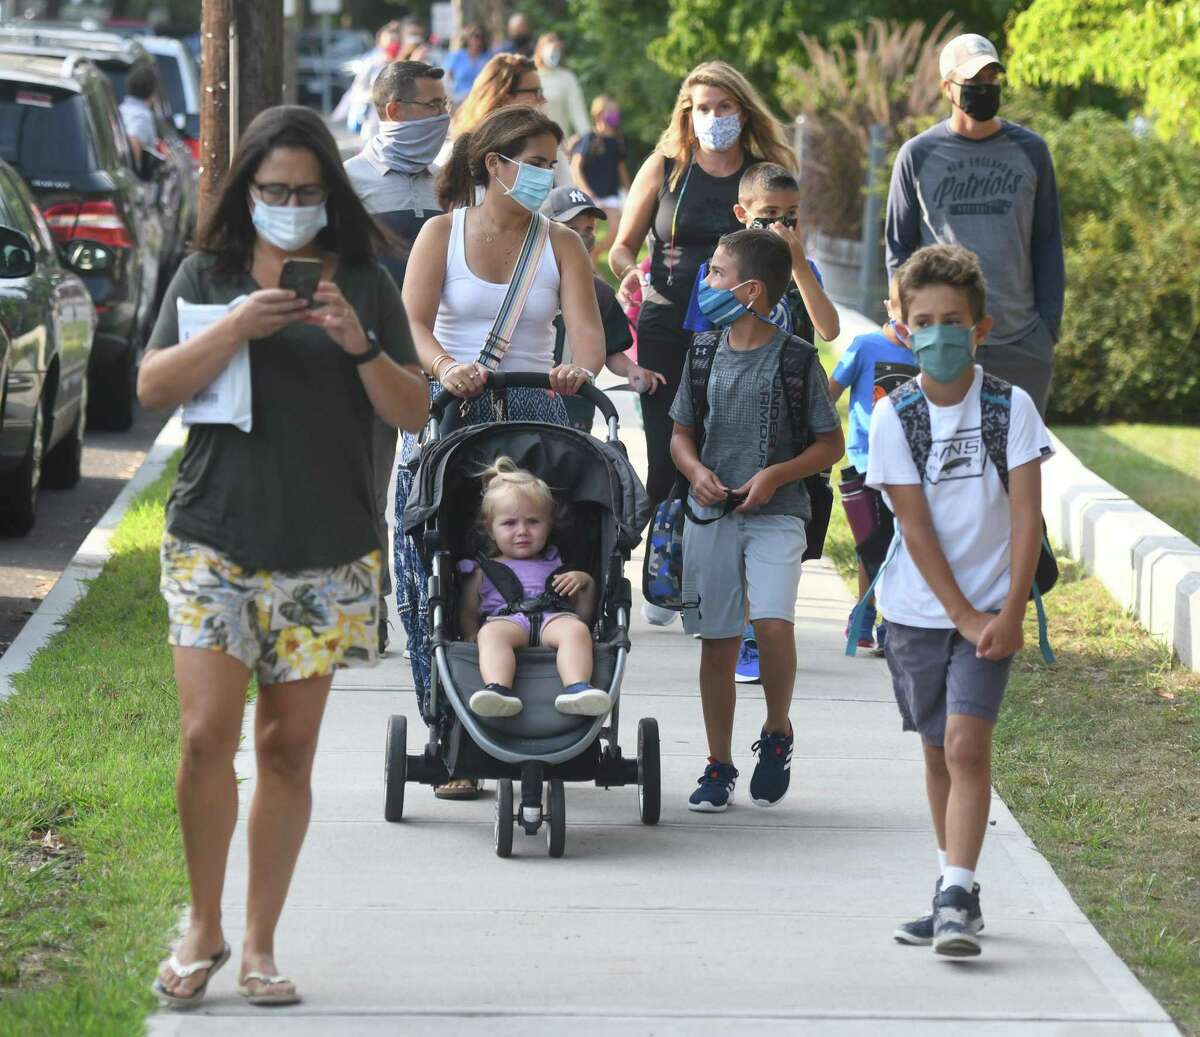 Parents walks their kids to school on the first day of the 2020-2021 school year at Old Greenwich School in Old Greenwich, Conn. Wednesday, Sept. 9, 2020. As a result, students and parents expressed a new ambivalence to the first day of school.